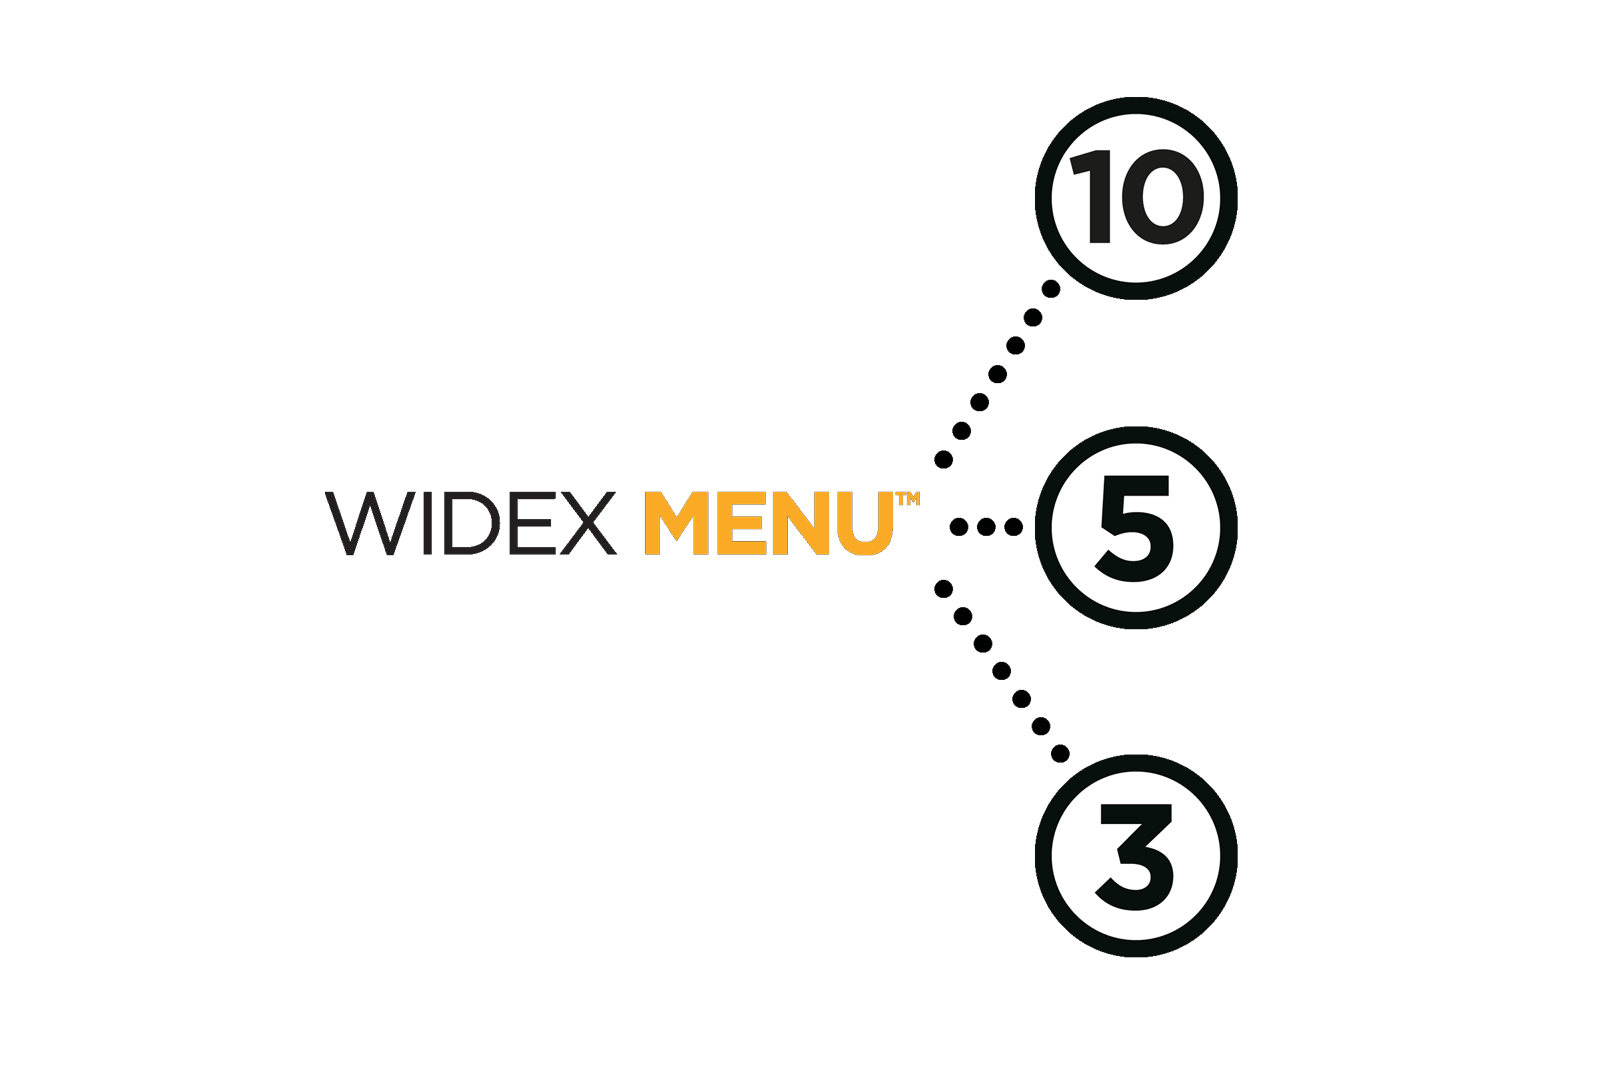 Widex MENU - the flexible choice